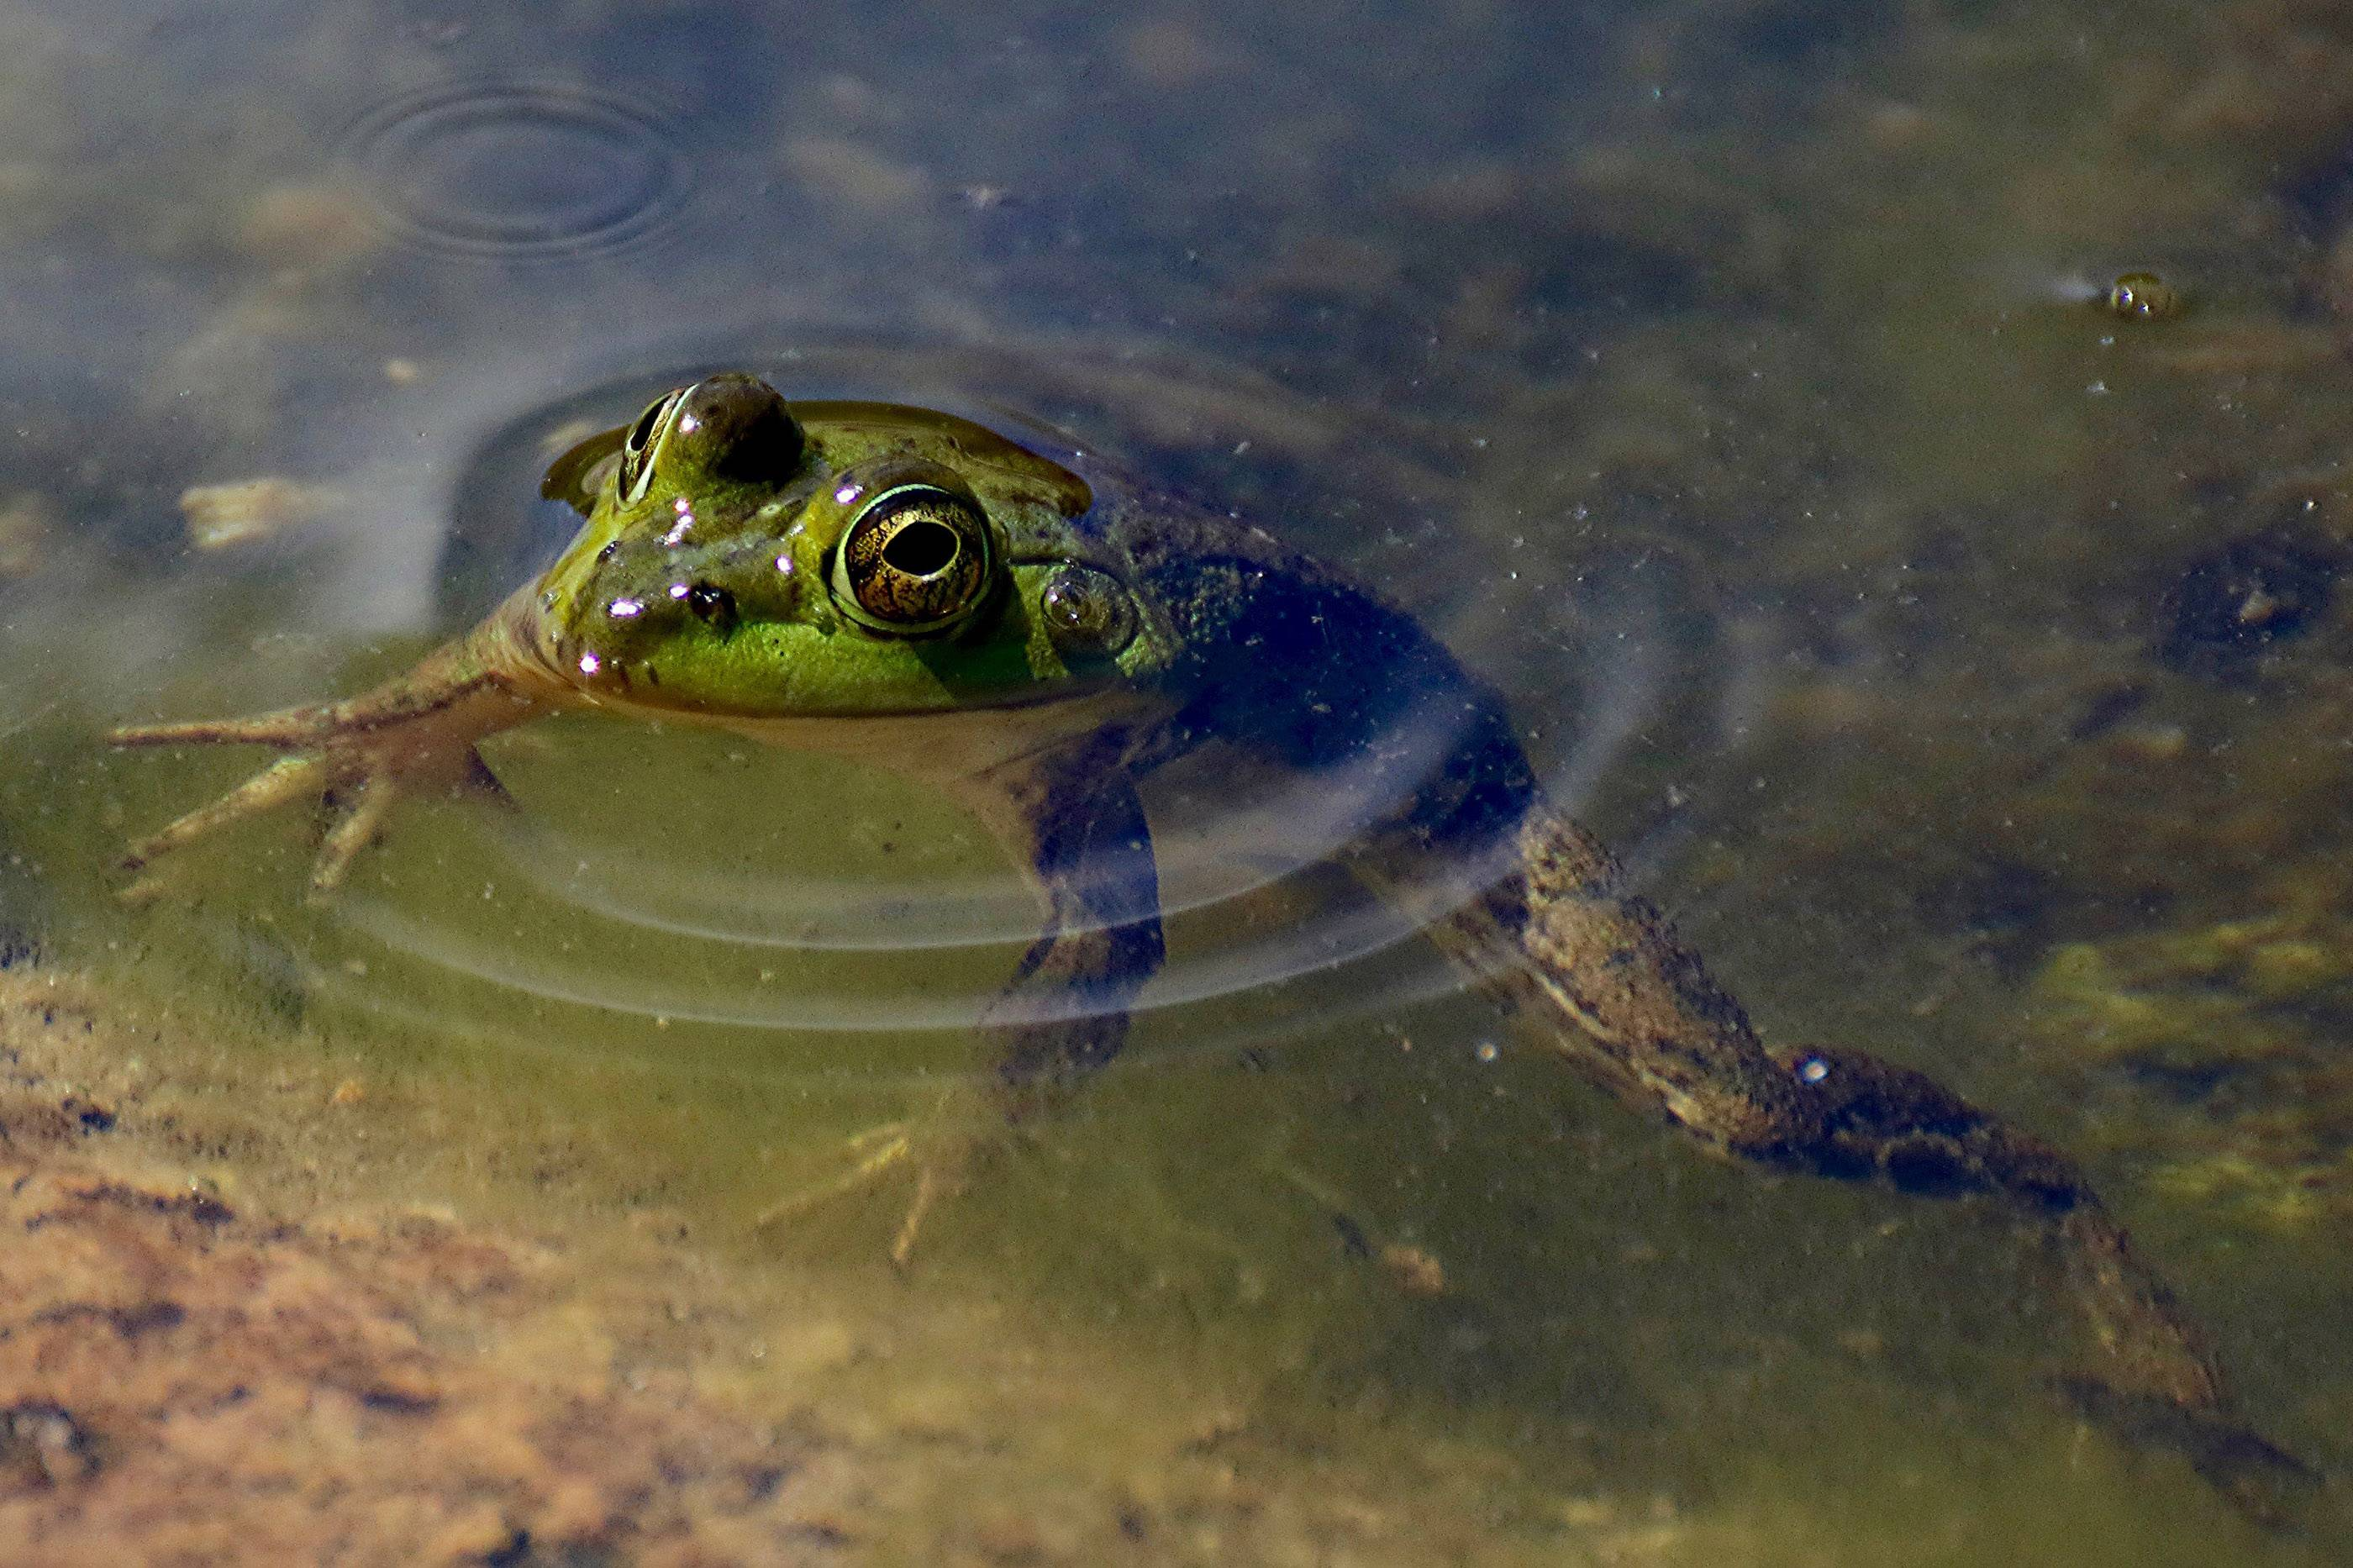 A frog peeks up from a pond in the Idea Garden area of Cantigny Park, Wheaton.